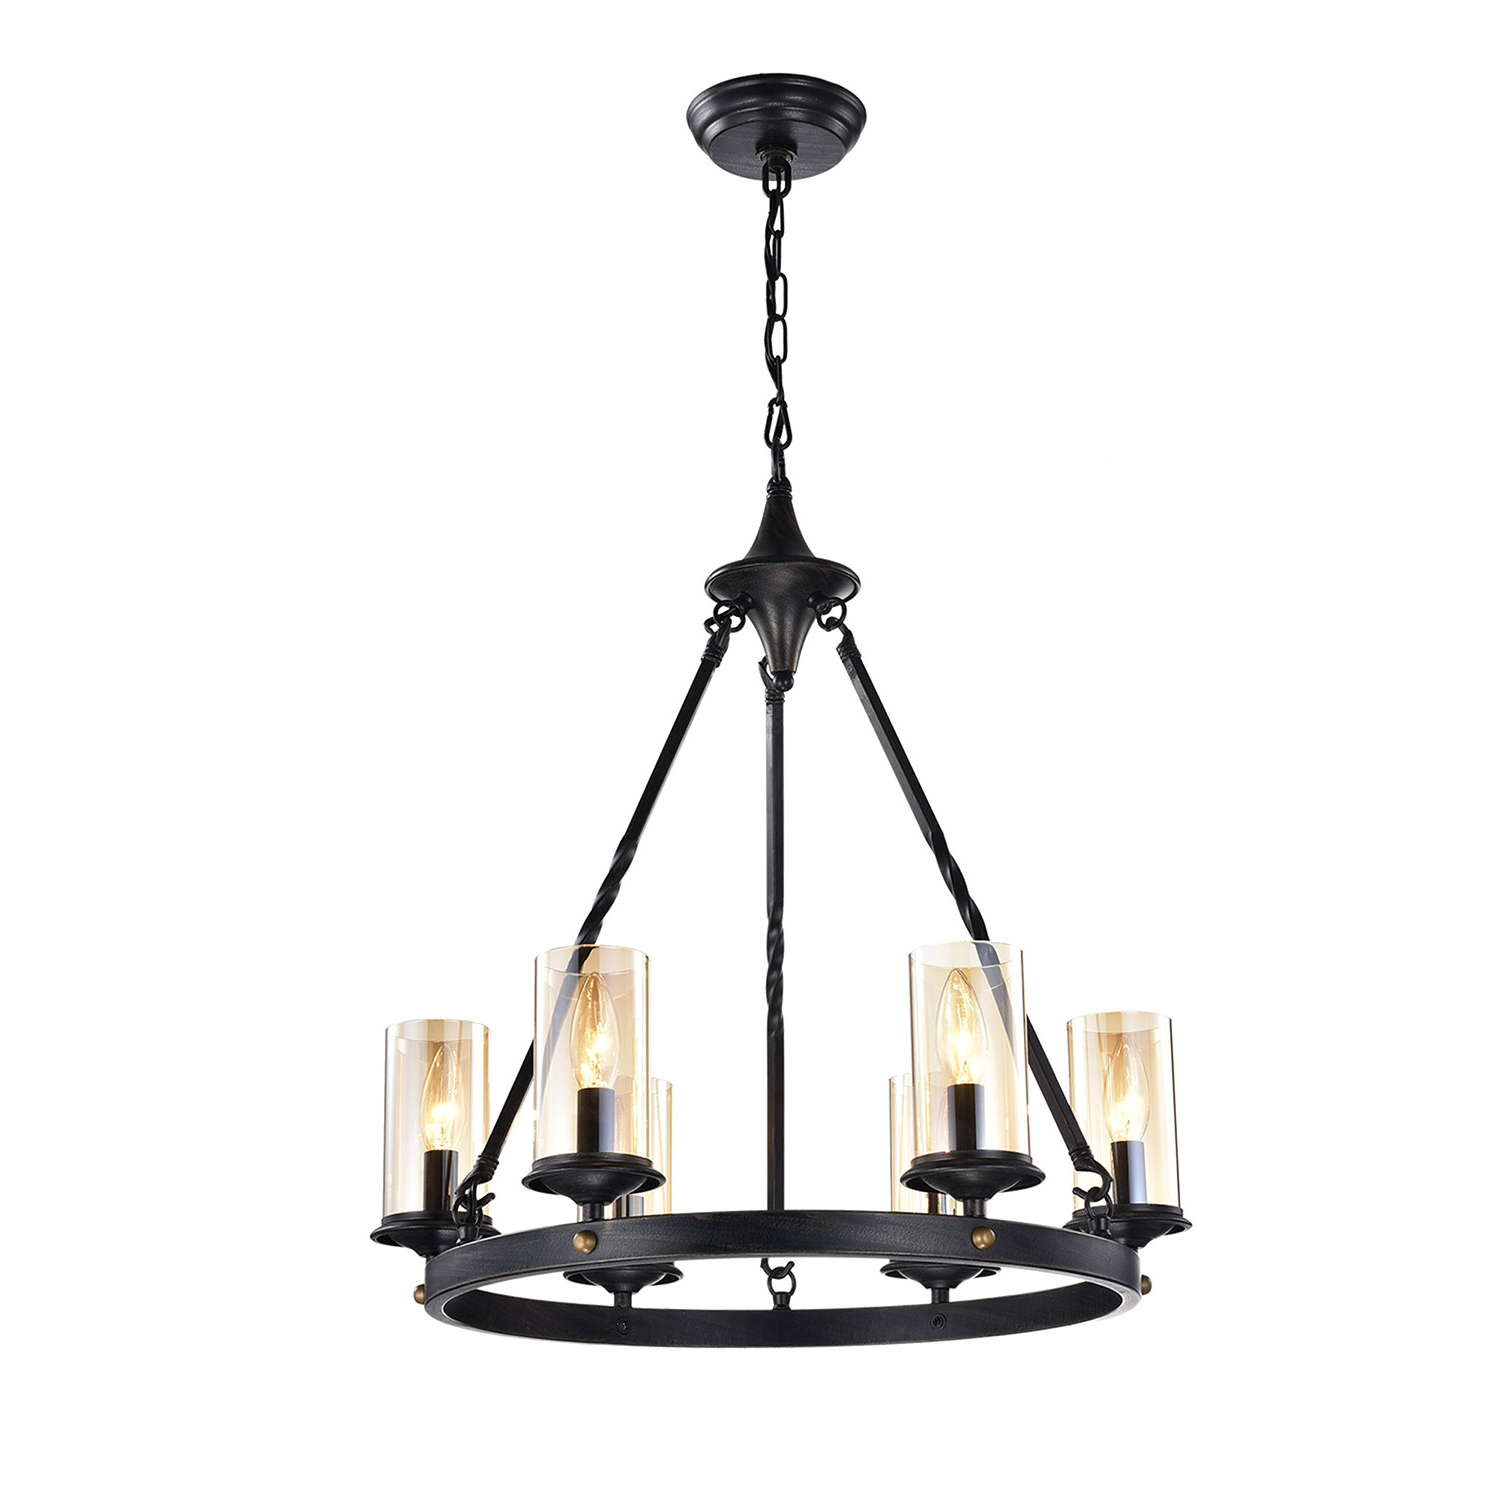 Widely Used Maytown 6 Light Wagon Wheel Chandelier Intended For Pickensville 6 Light Wagon Wheel Chandeliers (View 18 of 20)